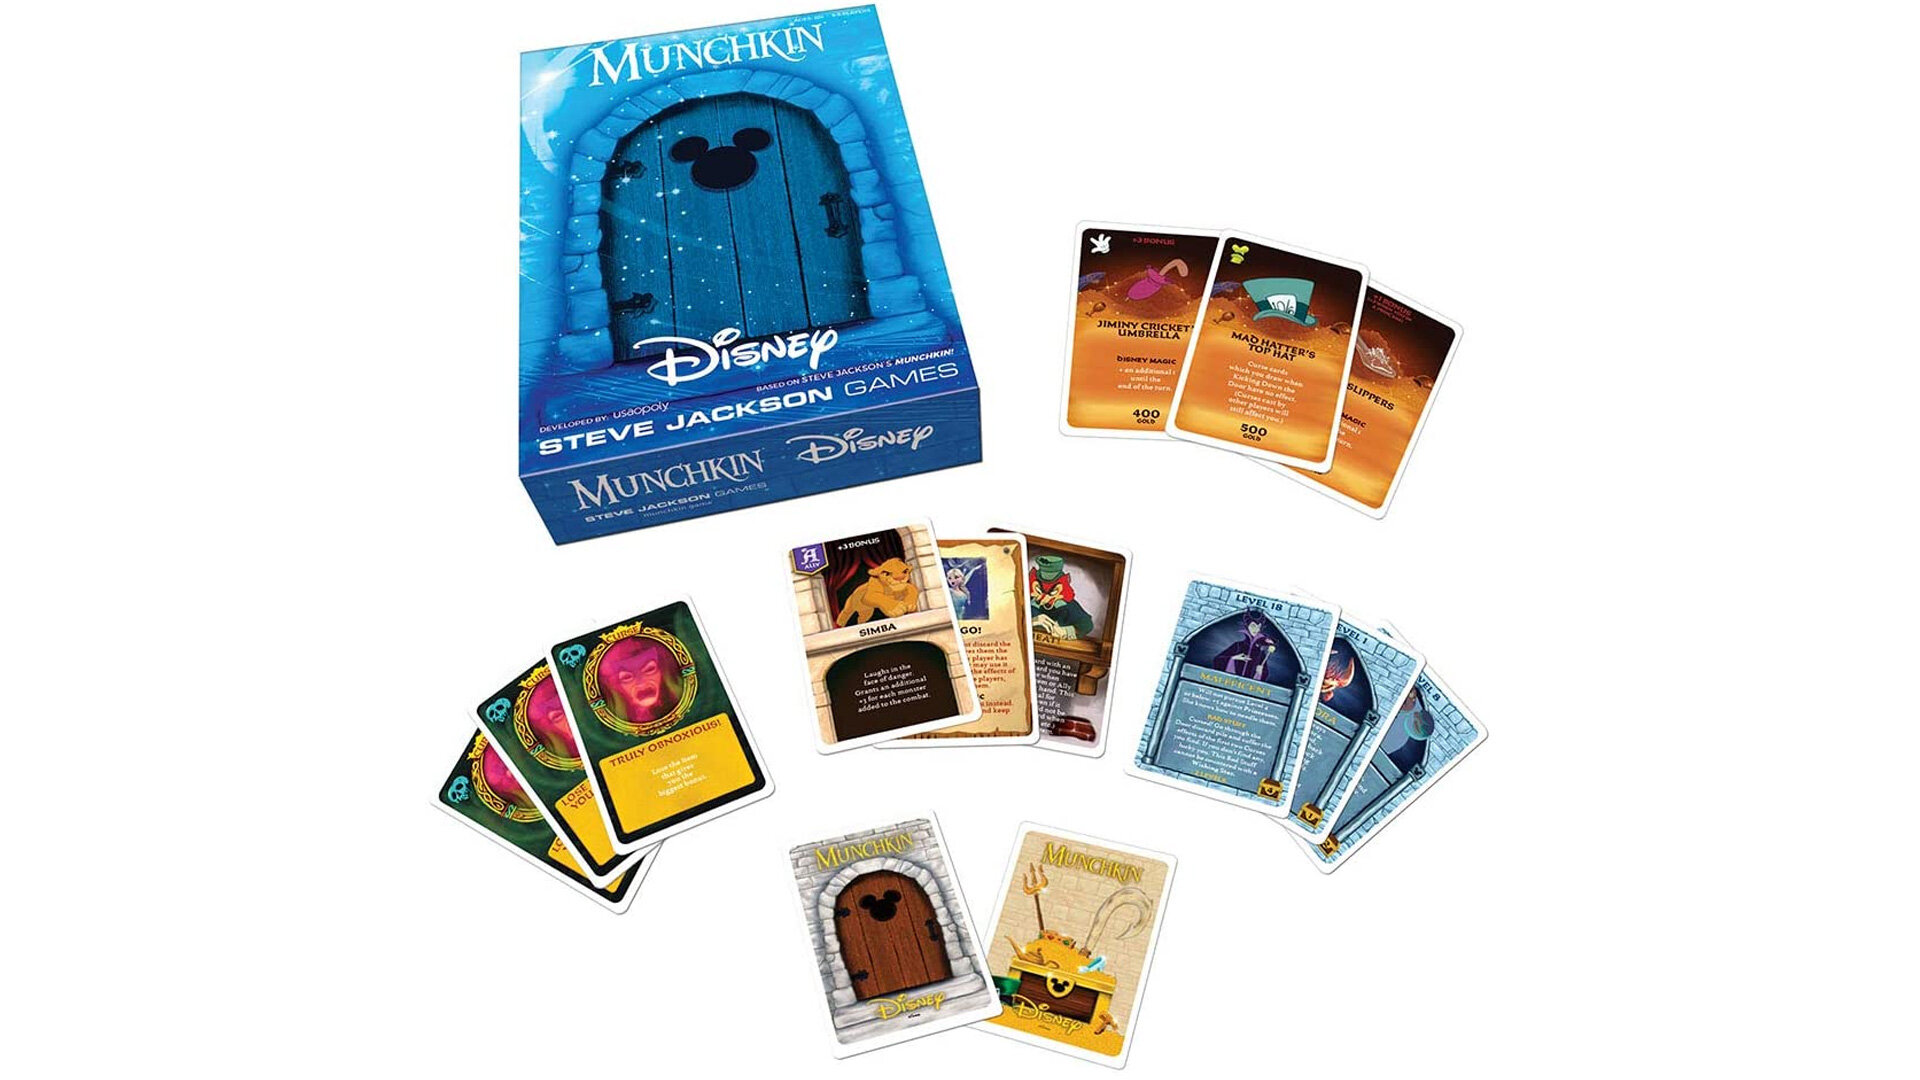 Review: MUNCHKIN: DISNEY is Fun for the Family